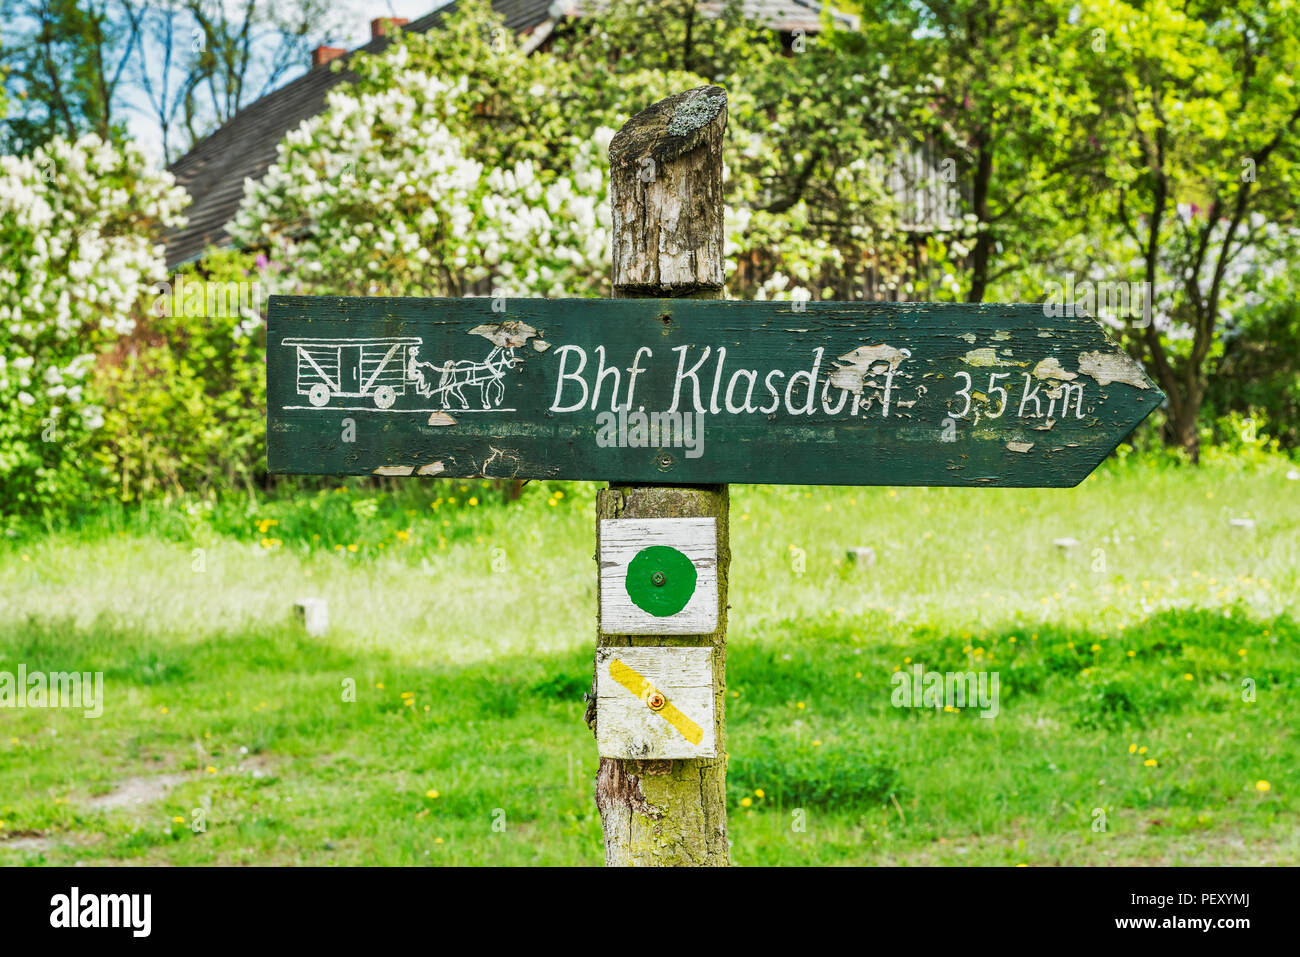 Signpost for the walk to Klasdorf, district of Glashuette Baruth/Mark, district of Teltow-Flaeming, Brandenburg, Germany, Europe - Stock Image